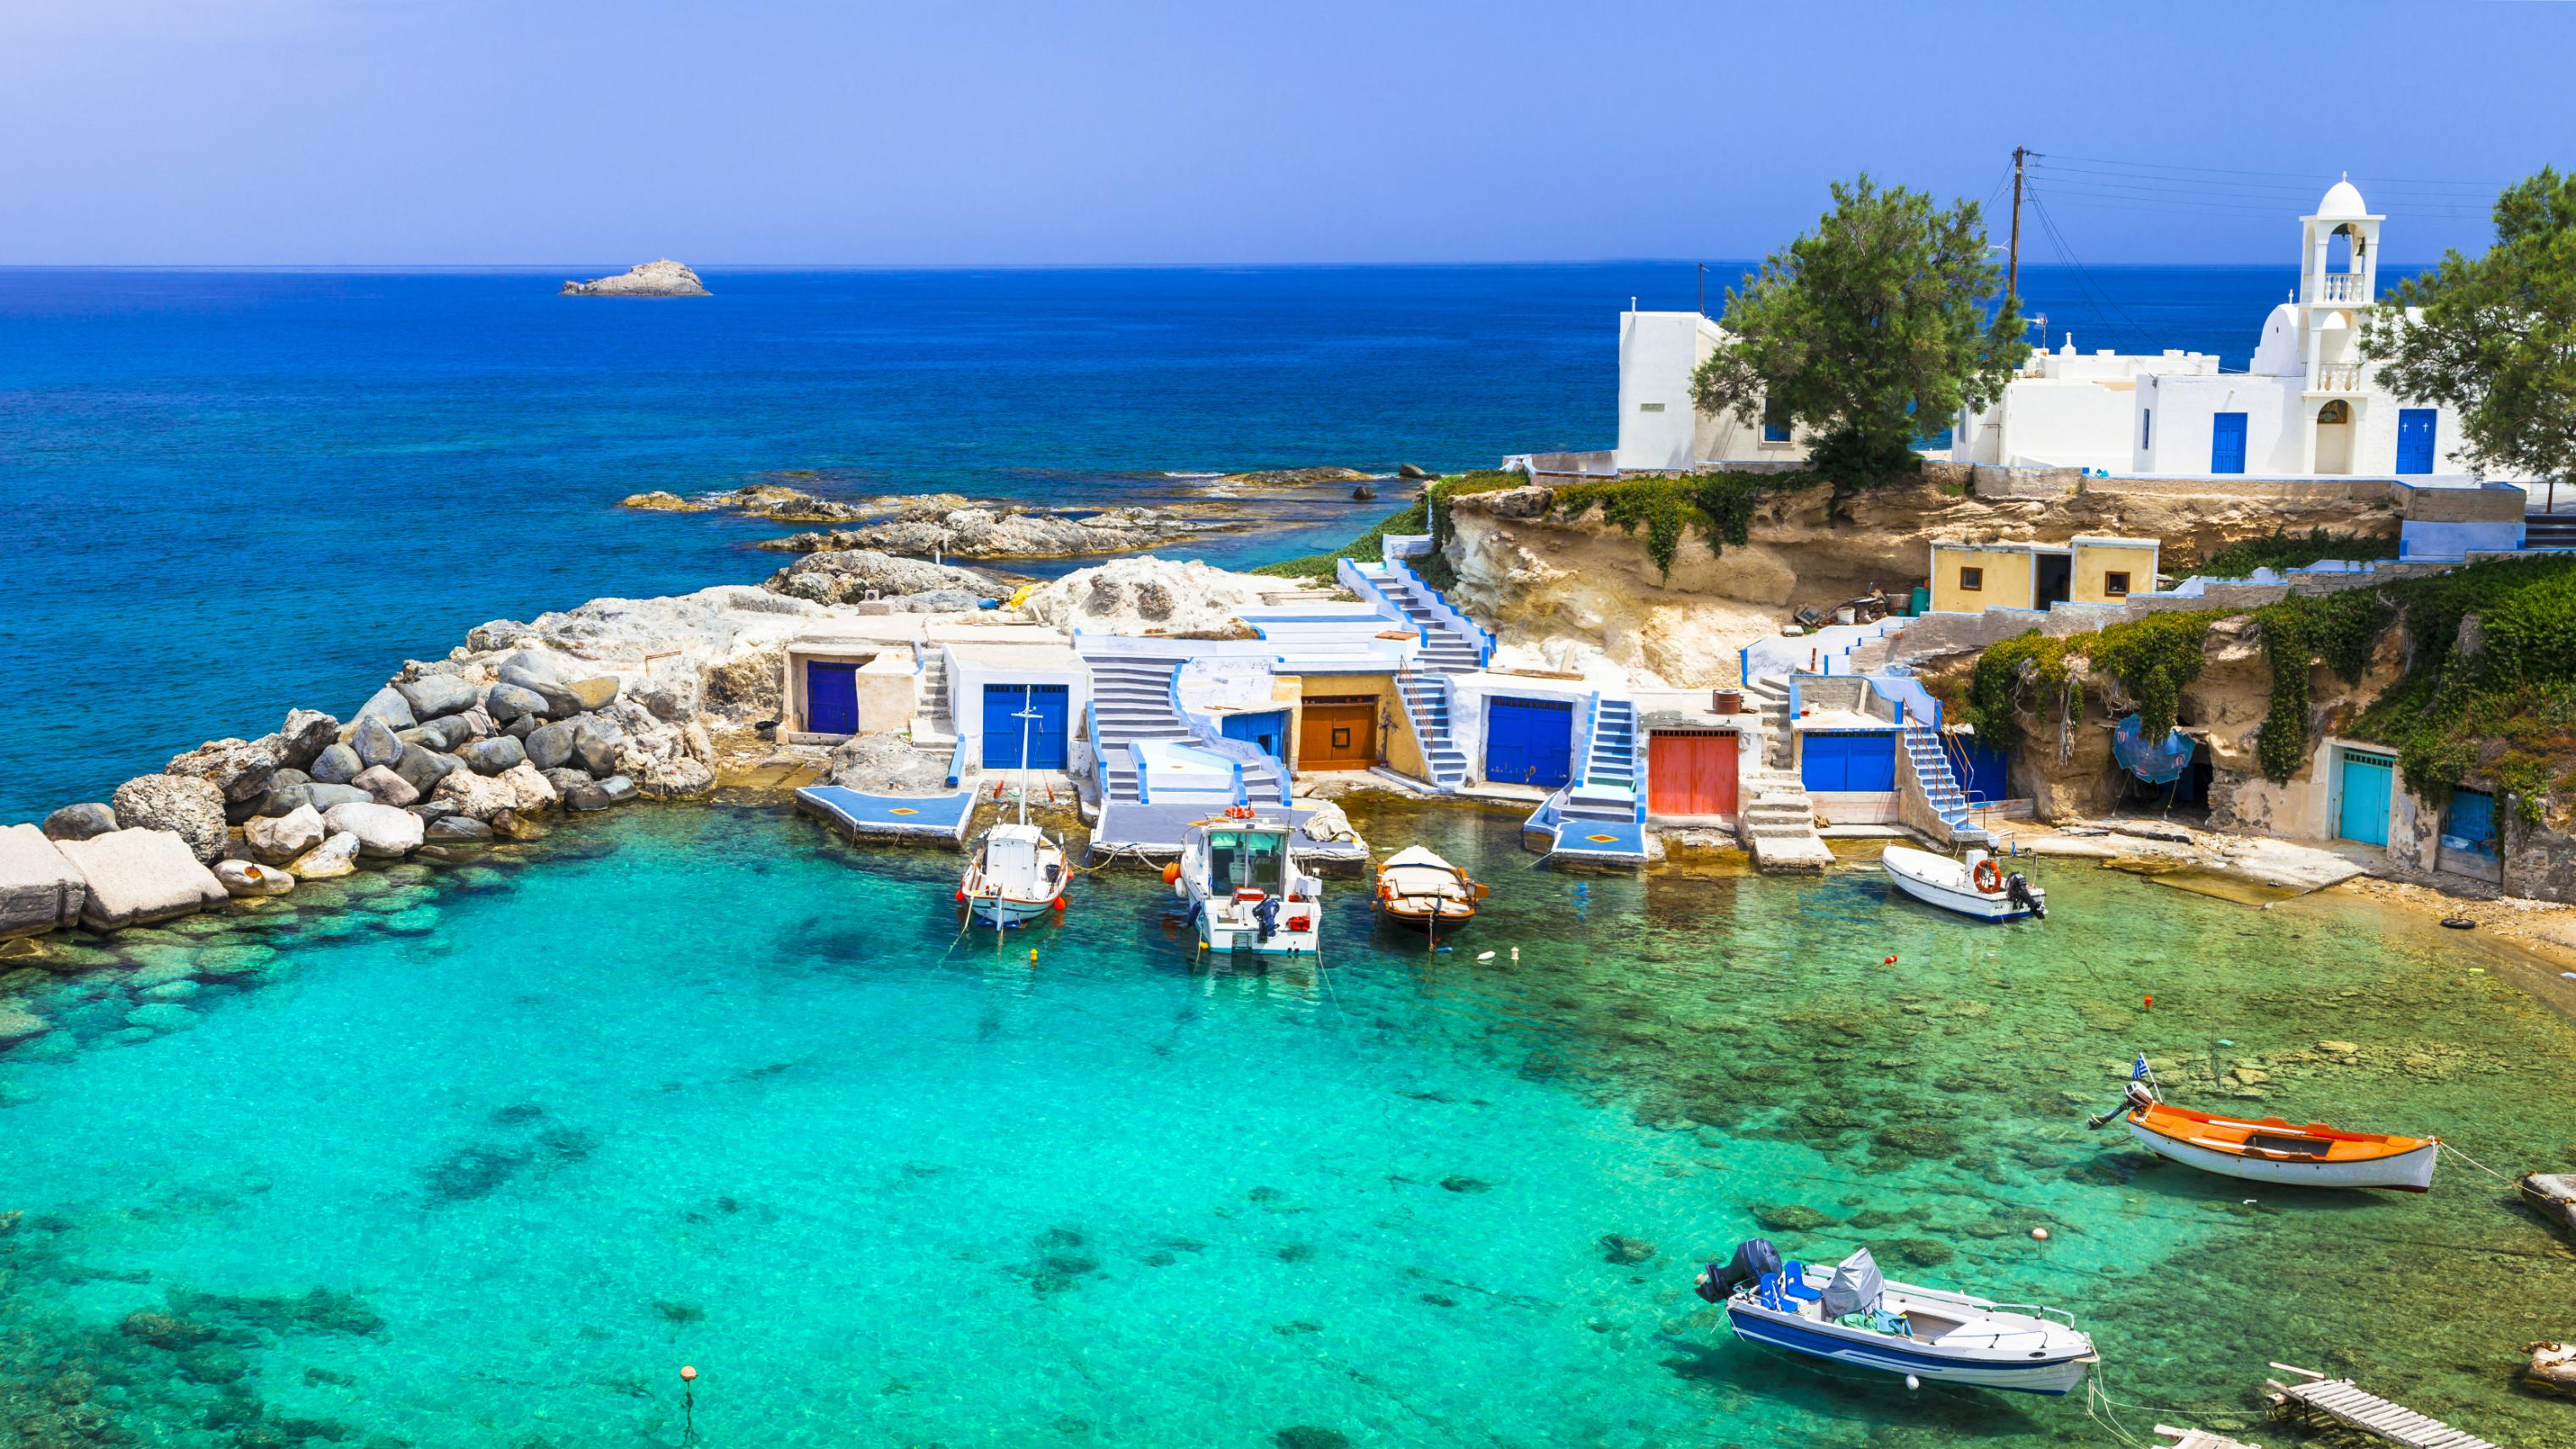 10 most beautiful islands in the world   CNN Travel